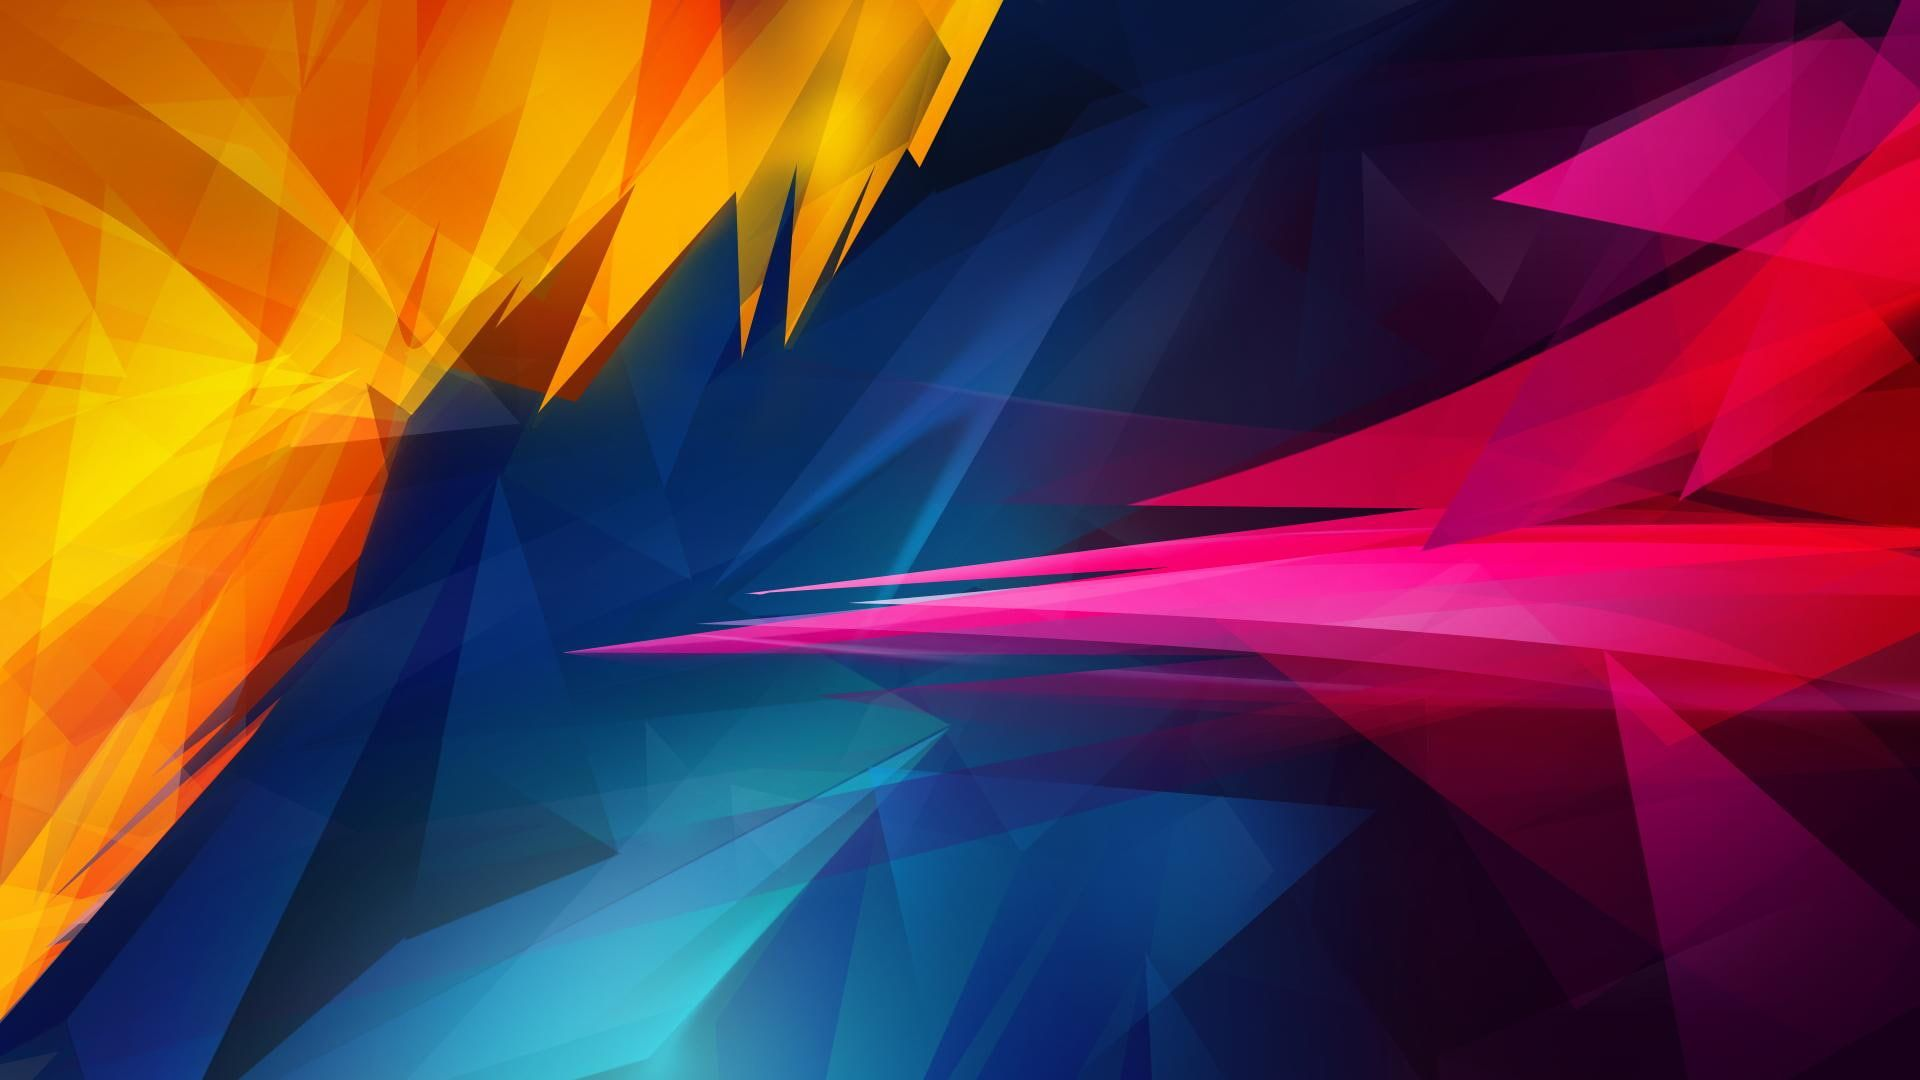 Abstract Digital Light Design Wallpaper Fractal Color Space Futuristic Graphic Backdrop Abstract Wallpaper Backgrounds Abstract Abstract Wallpaper